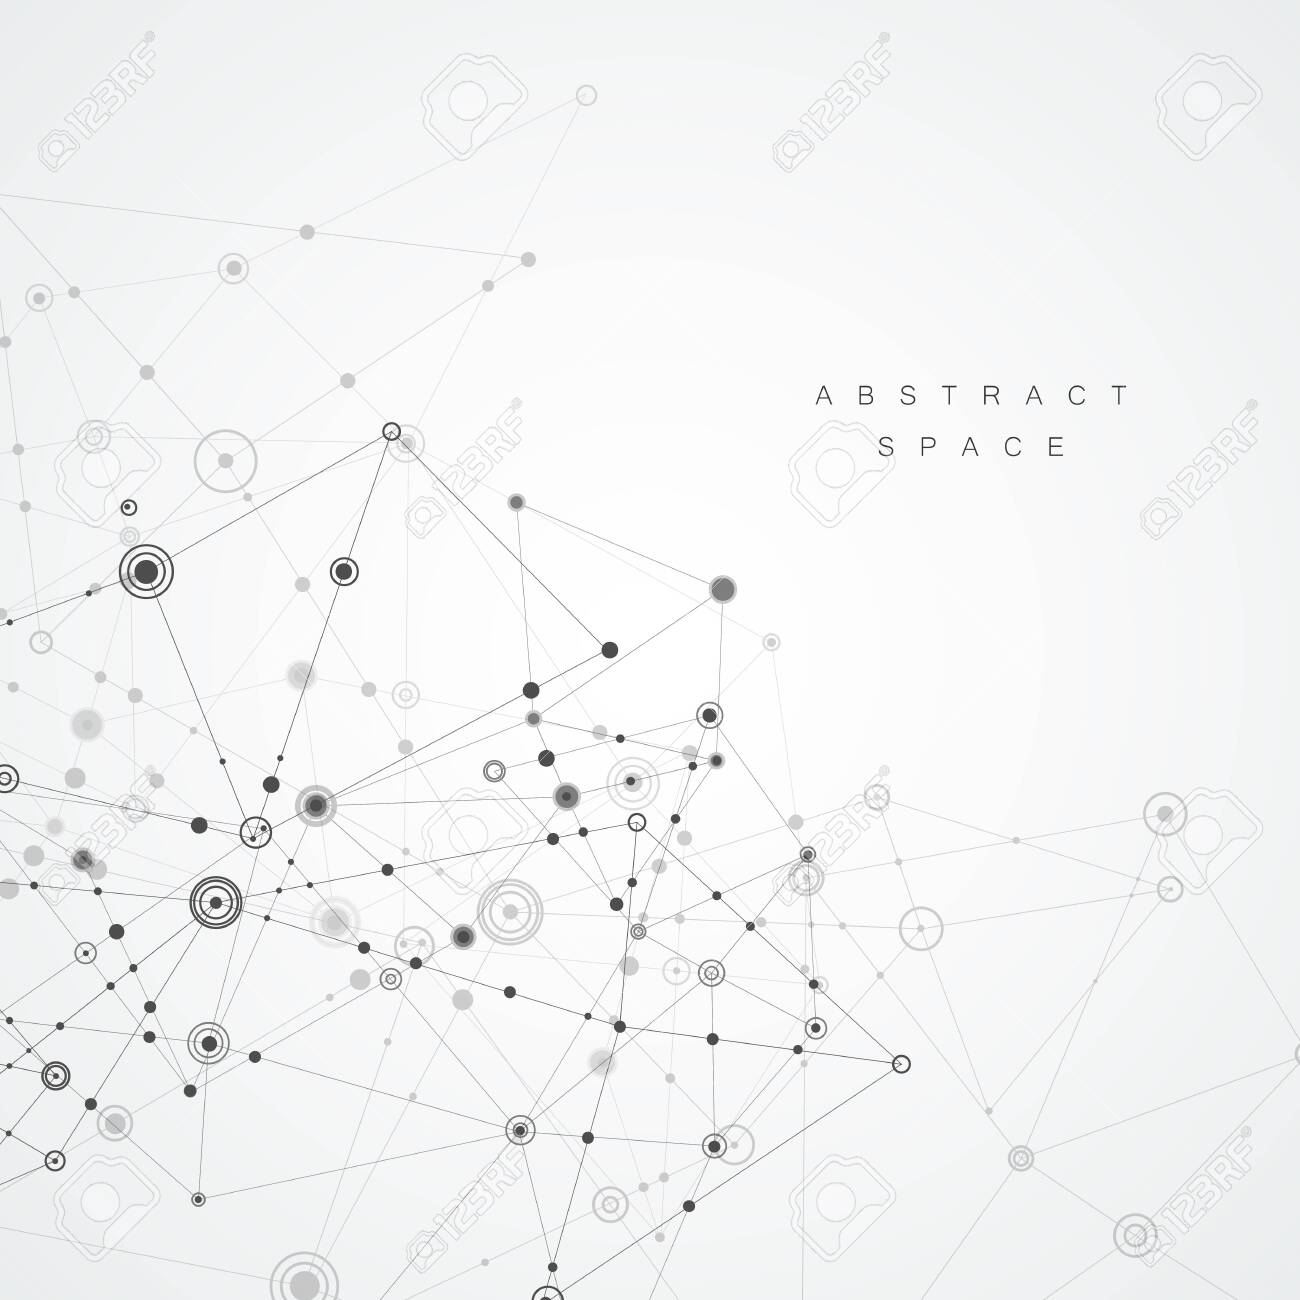 Abstract polygonal background. Geometrical design with connecting dots and lines - 130841185